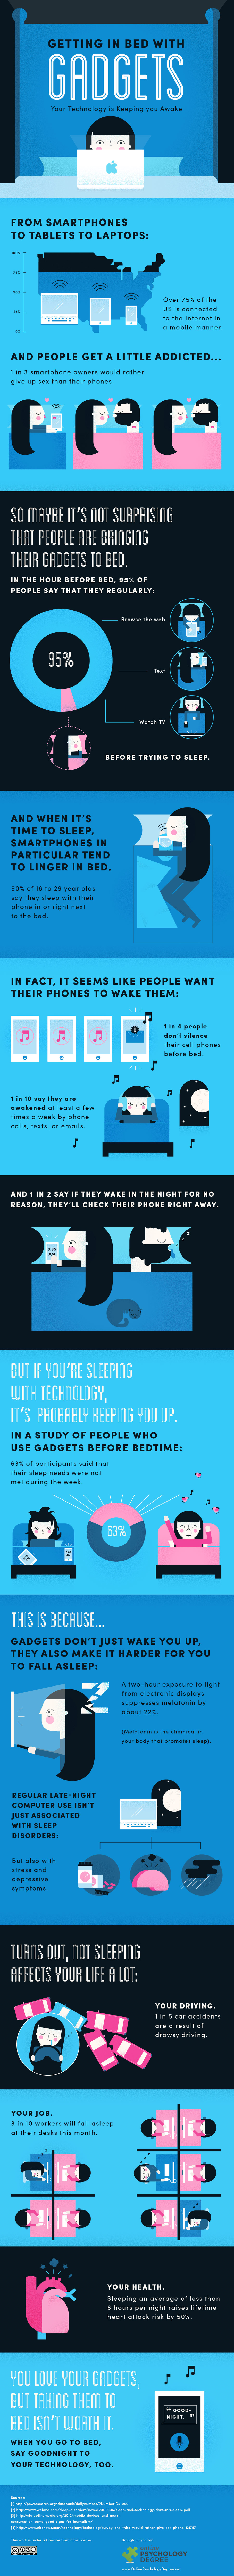 Gadgets at Bedtime: Your Technology Is Keeping You Awake